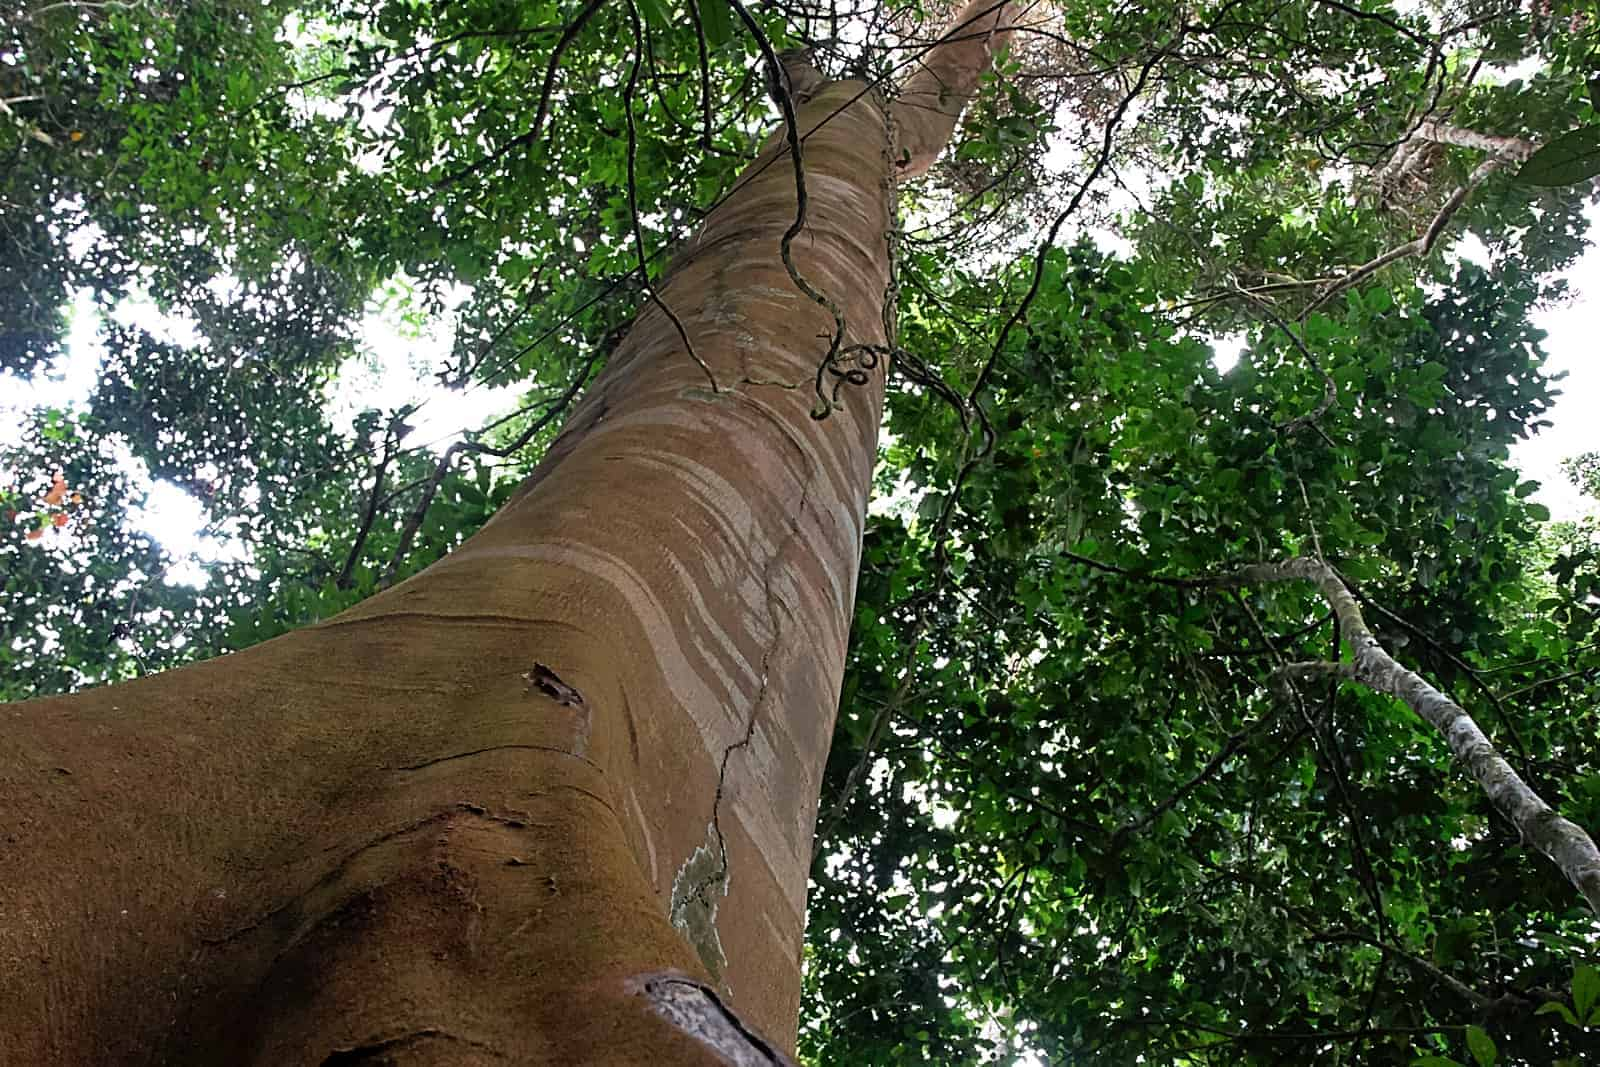 Community based approach the key to rainforest conservation